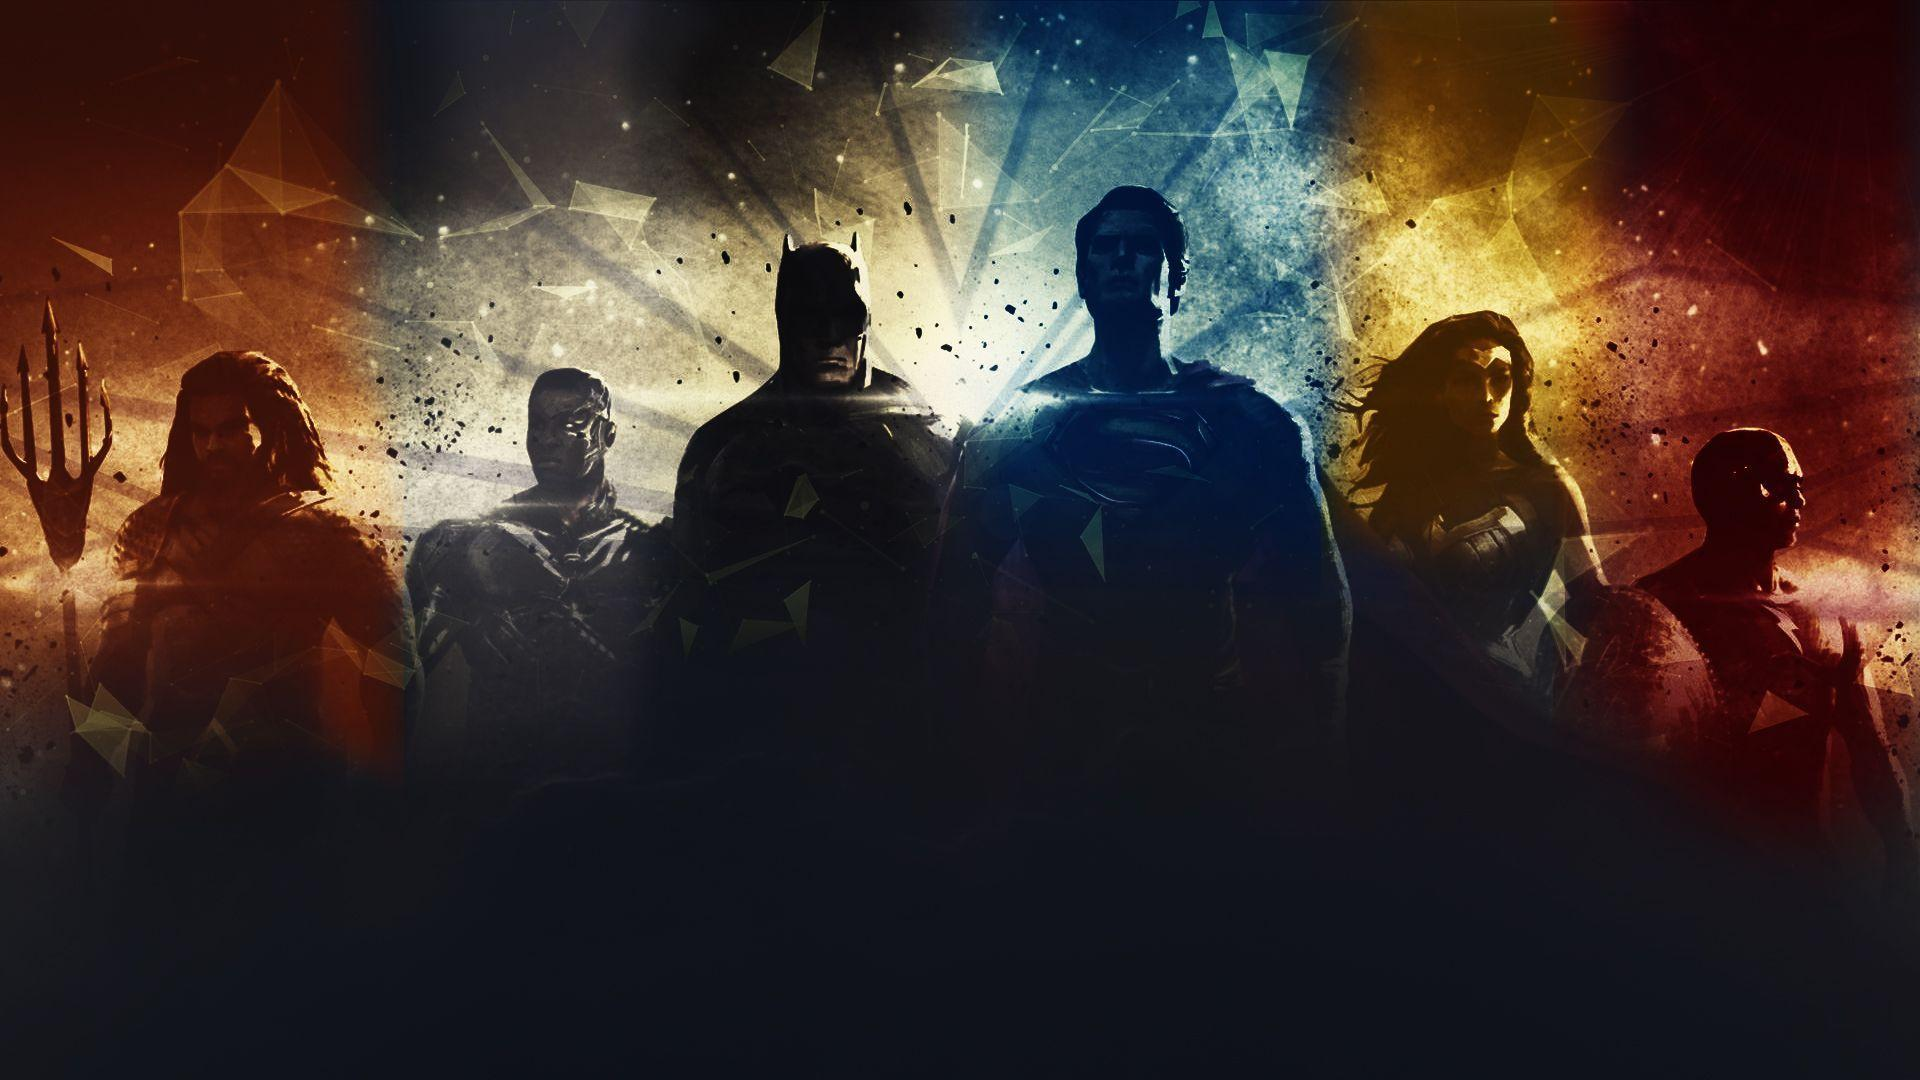 Justice League Hd Wallpapers Wallpaper Cave